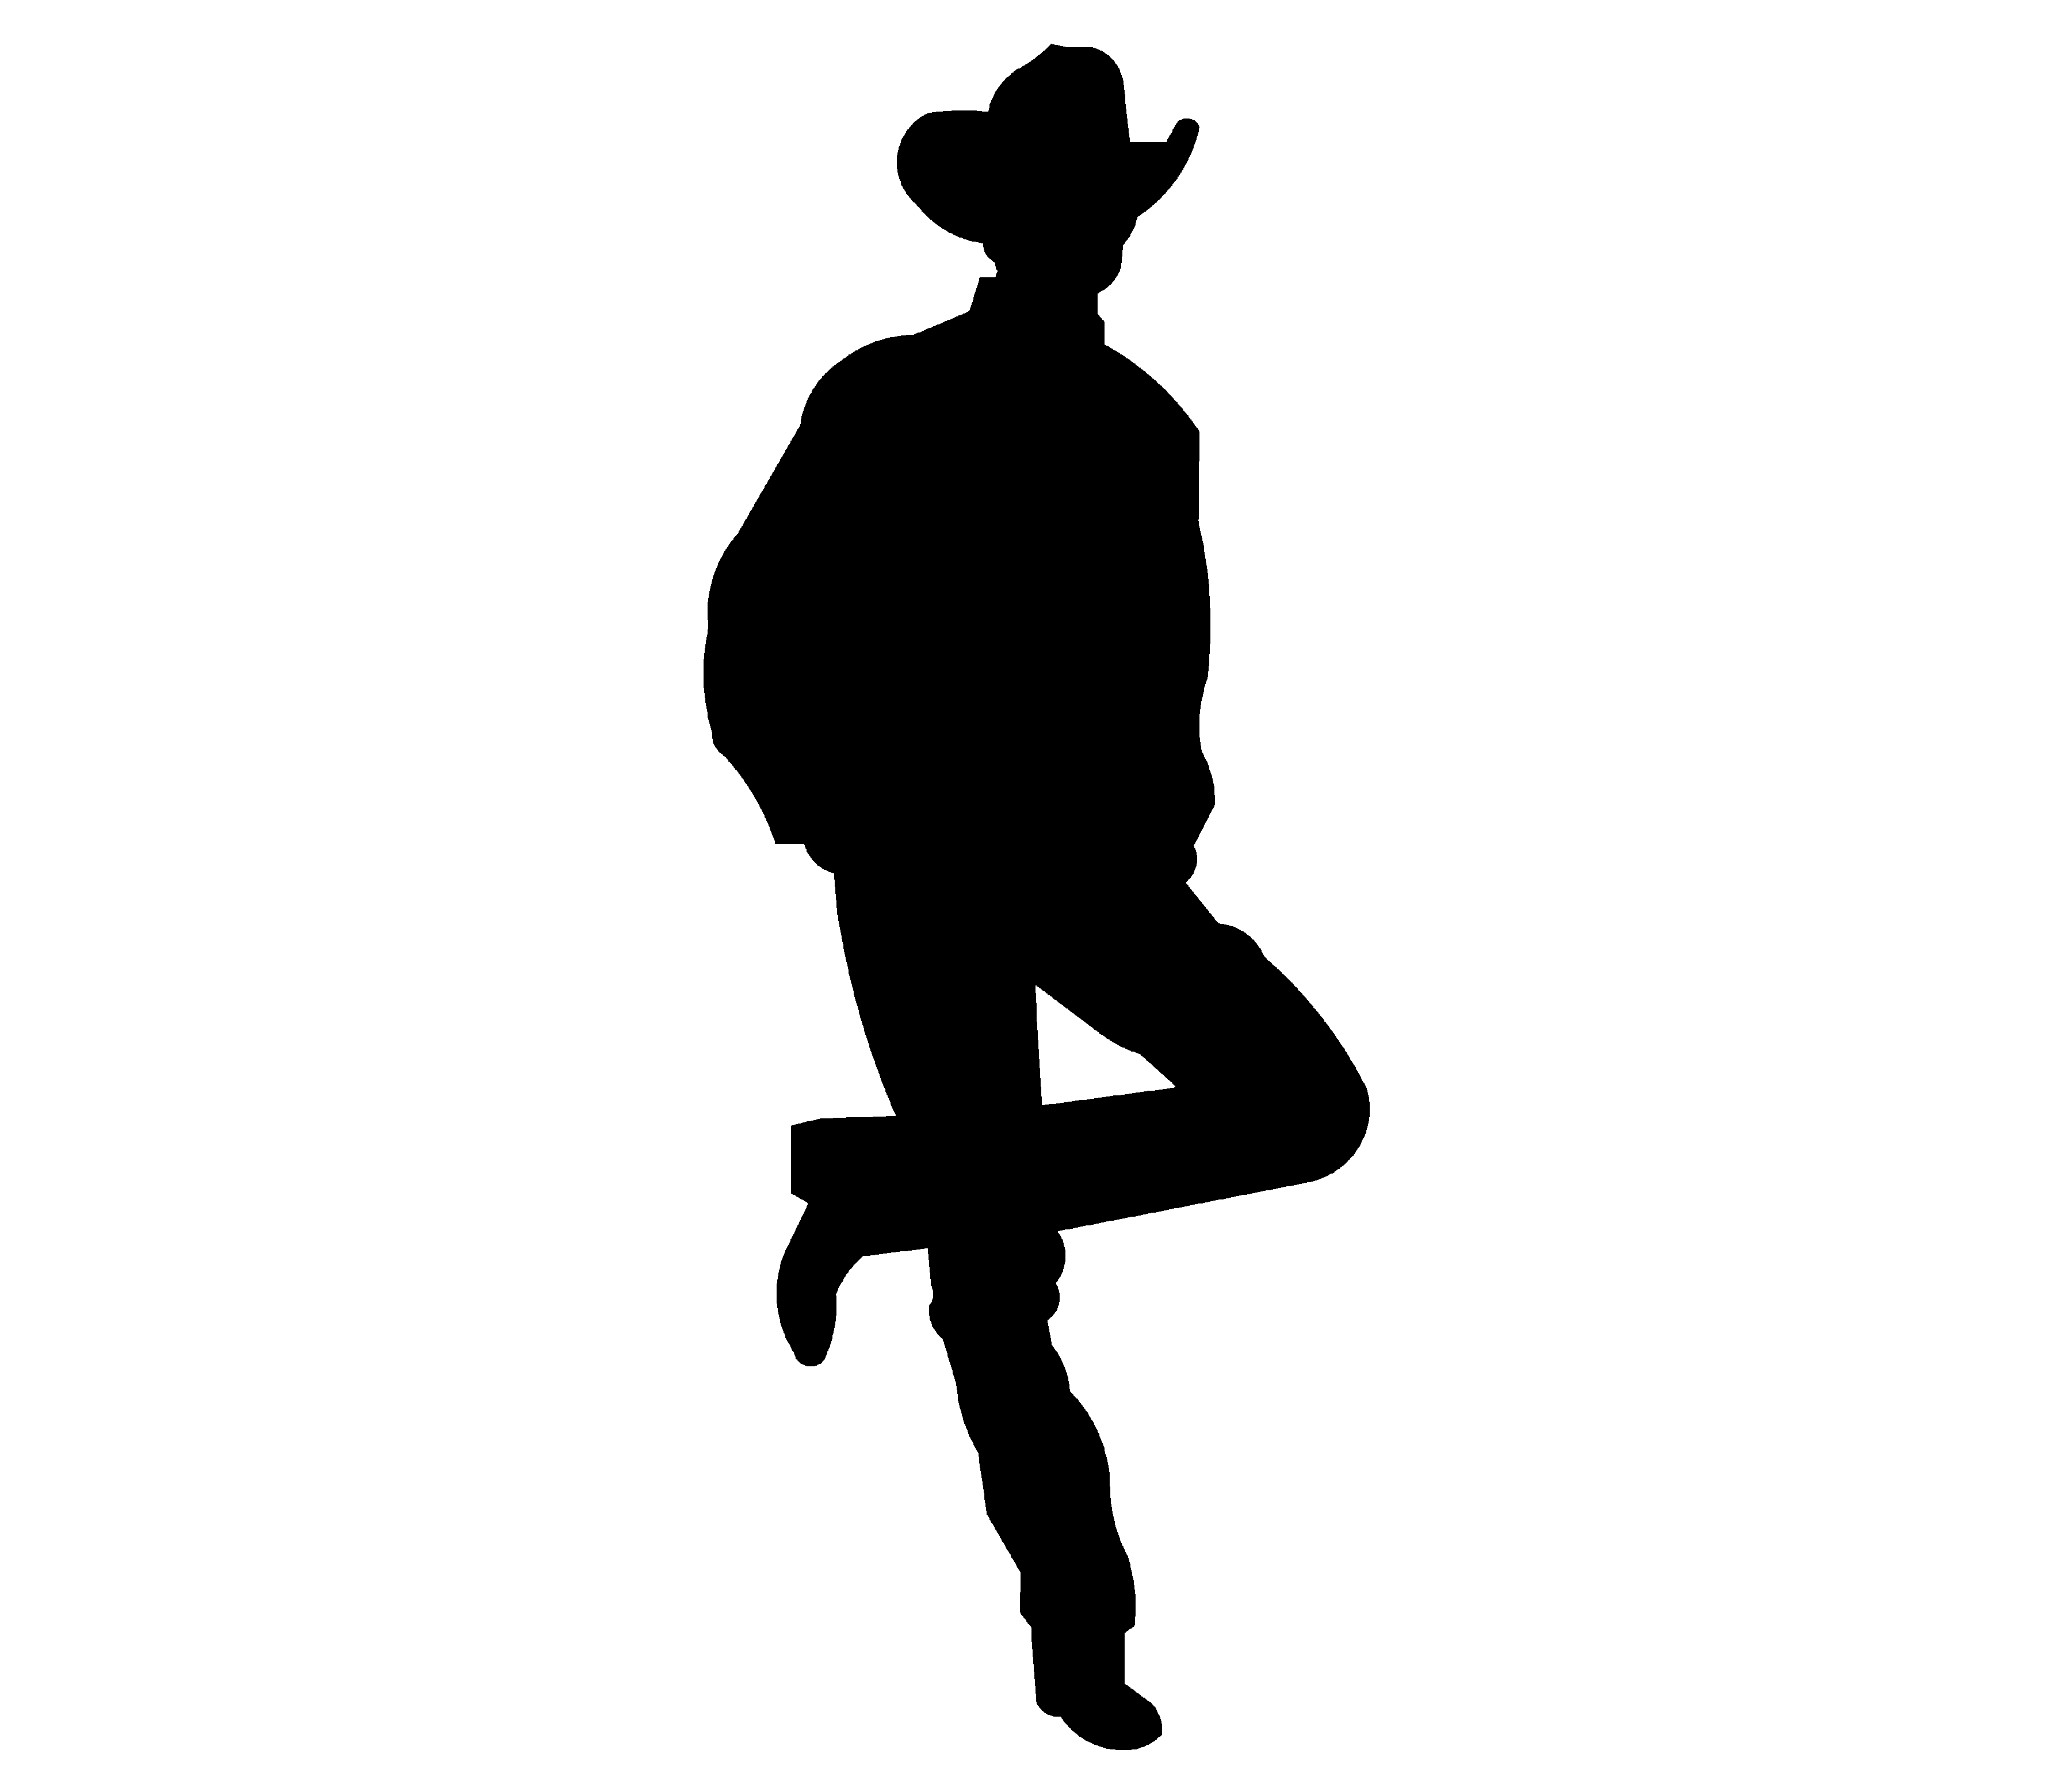 Free Cowboy Silhouette, Download Free Clip Art, Free Clip.